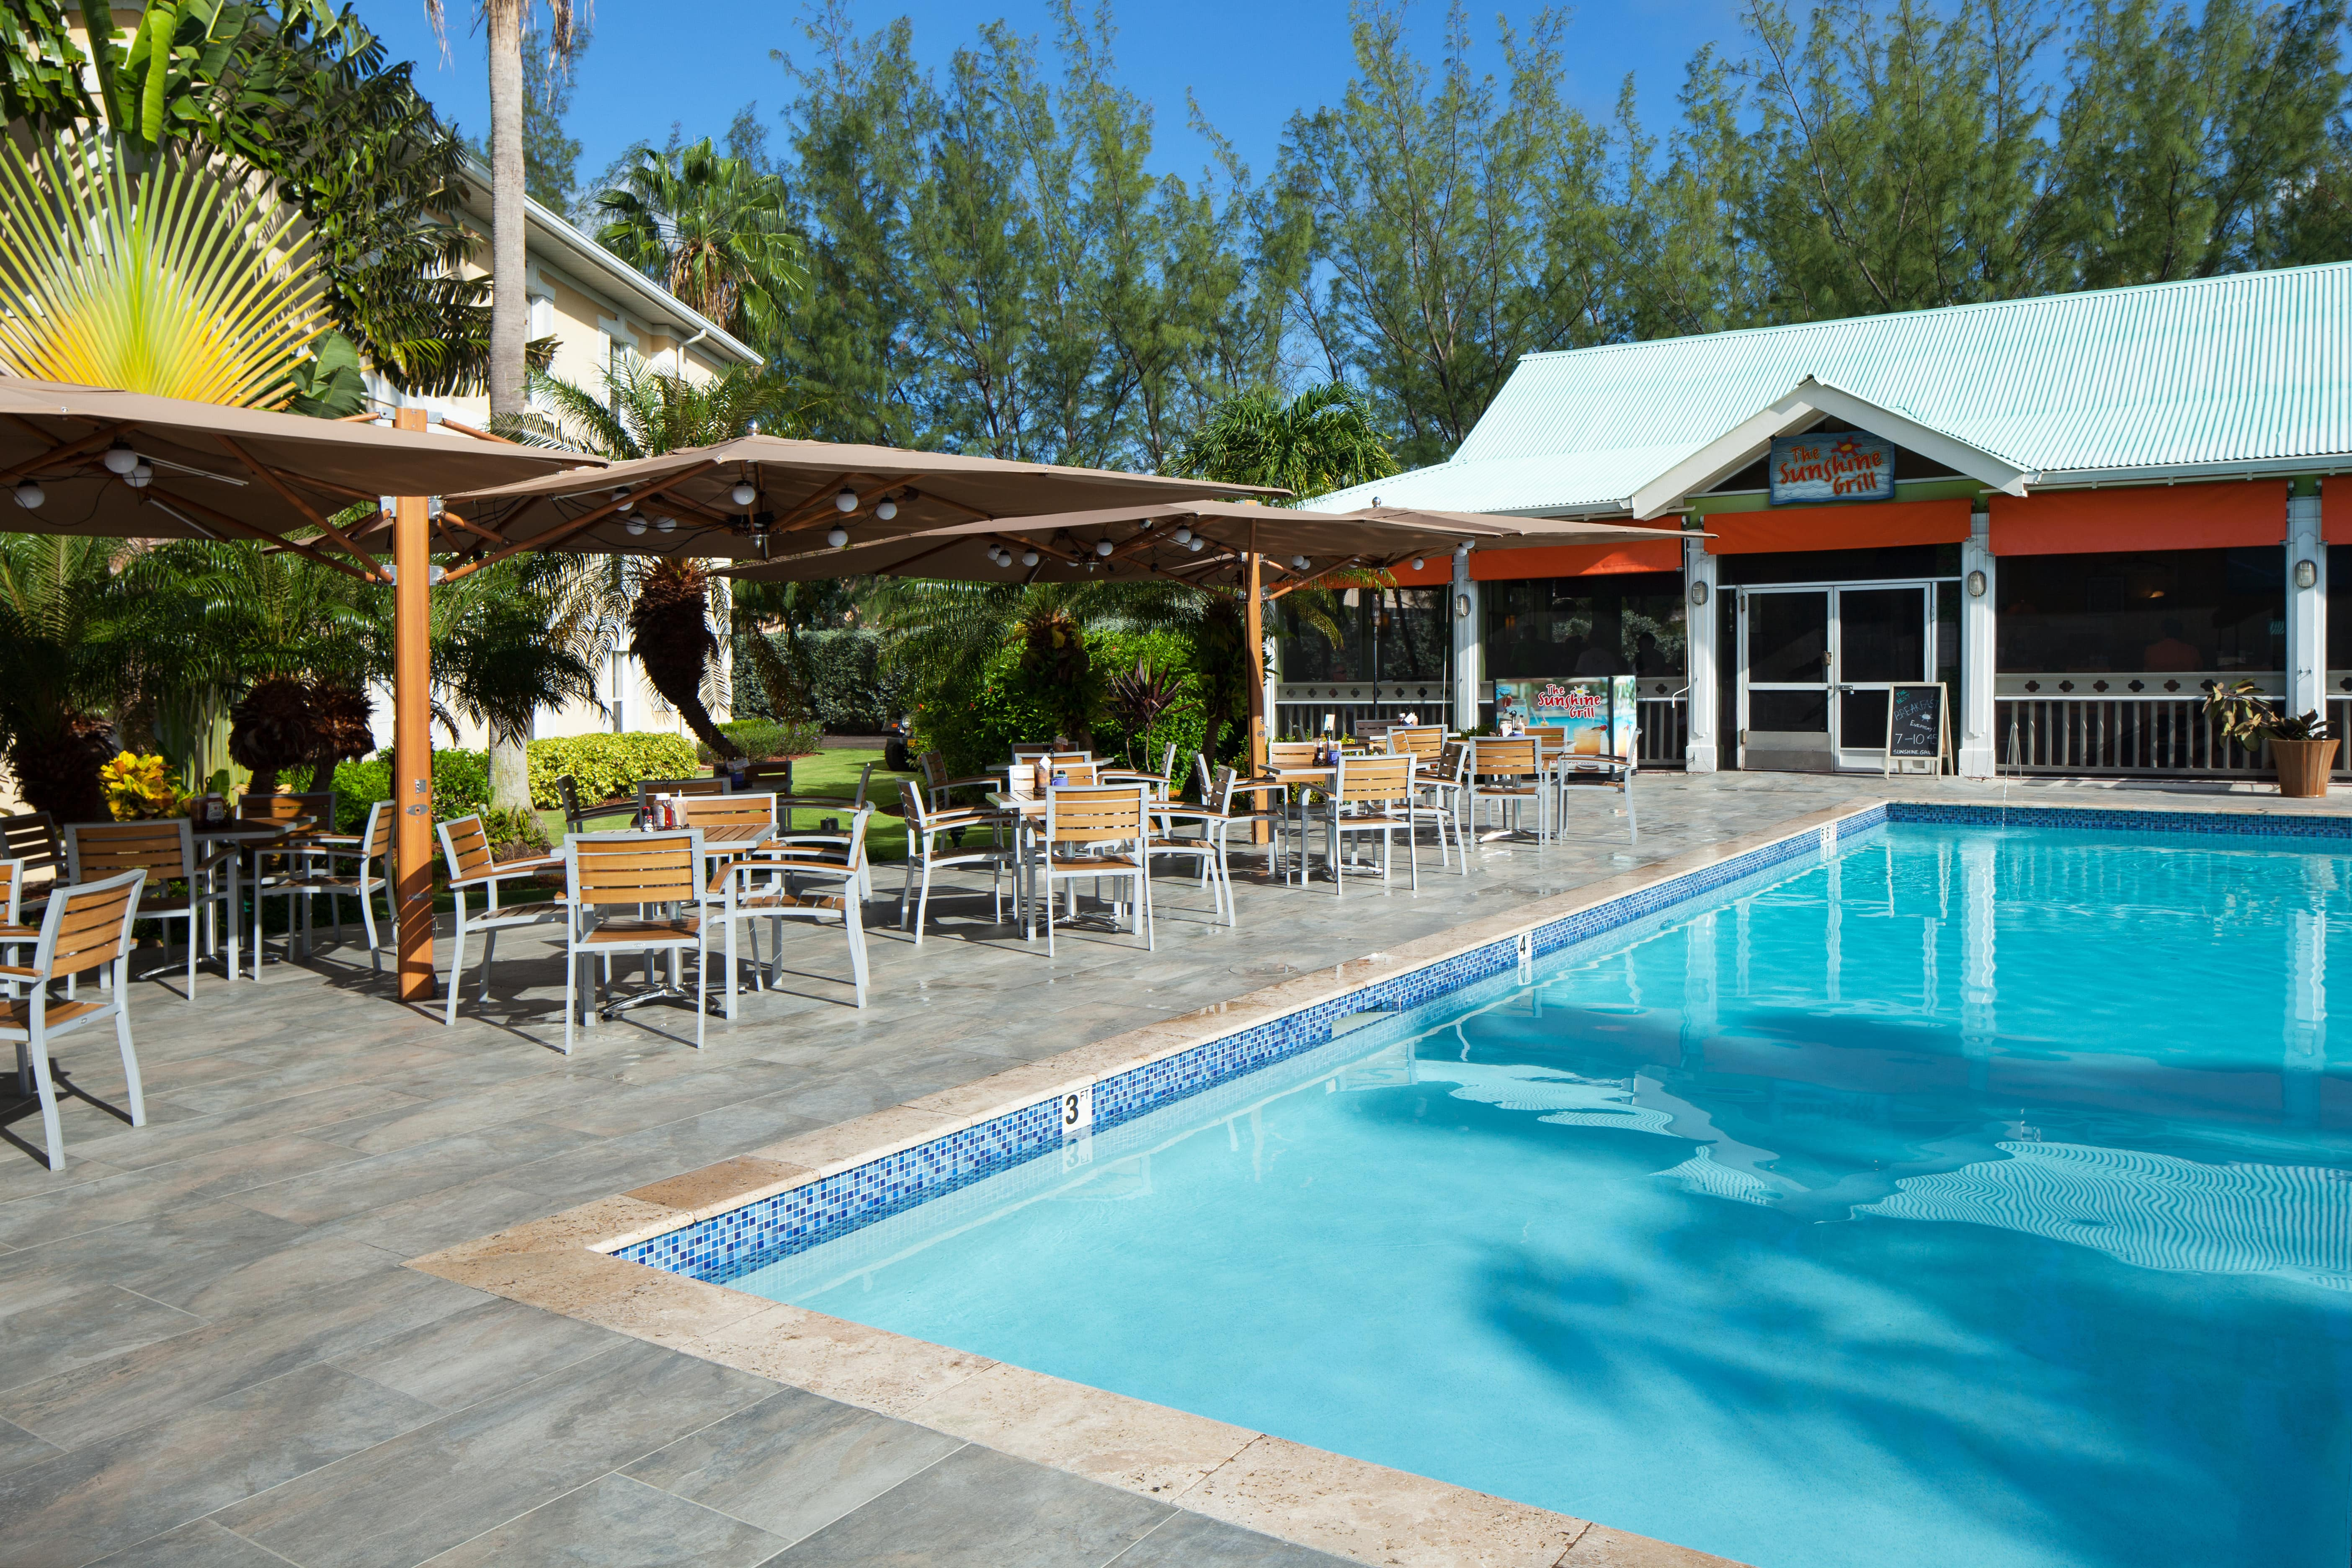 Sunshine Grill Cayman Outside pool and cahirs